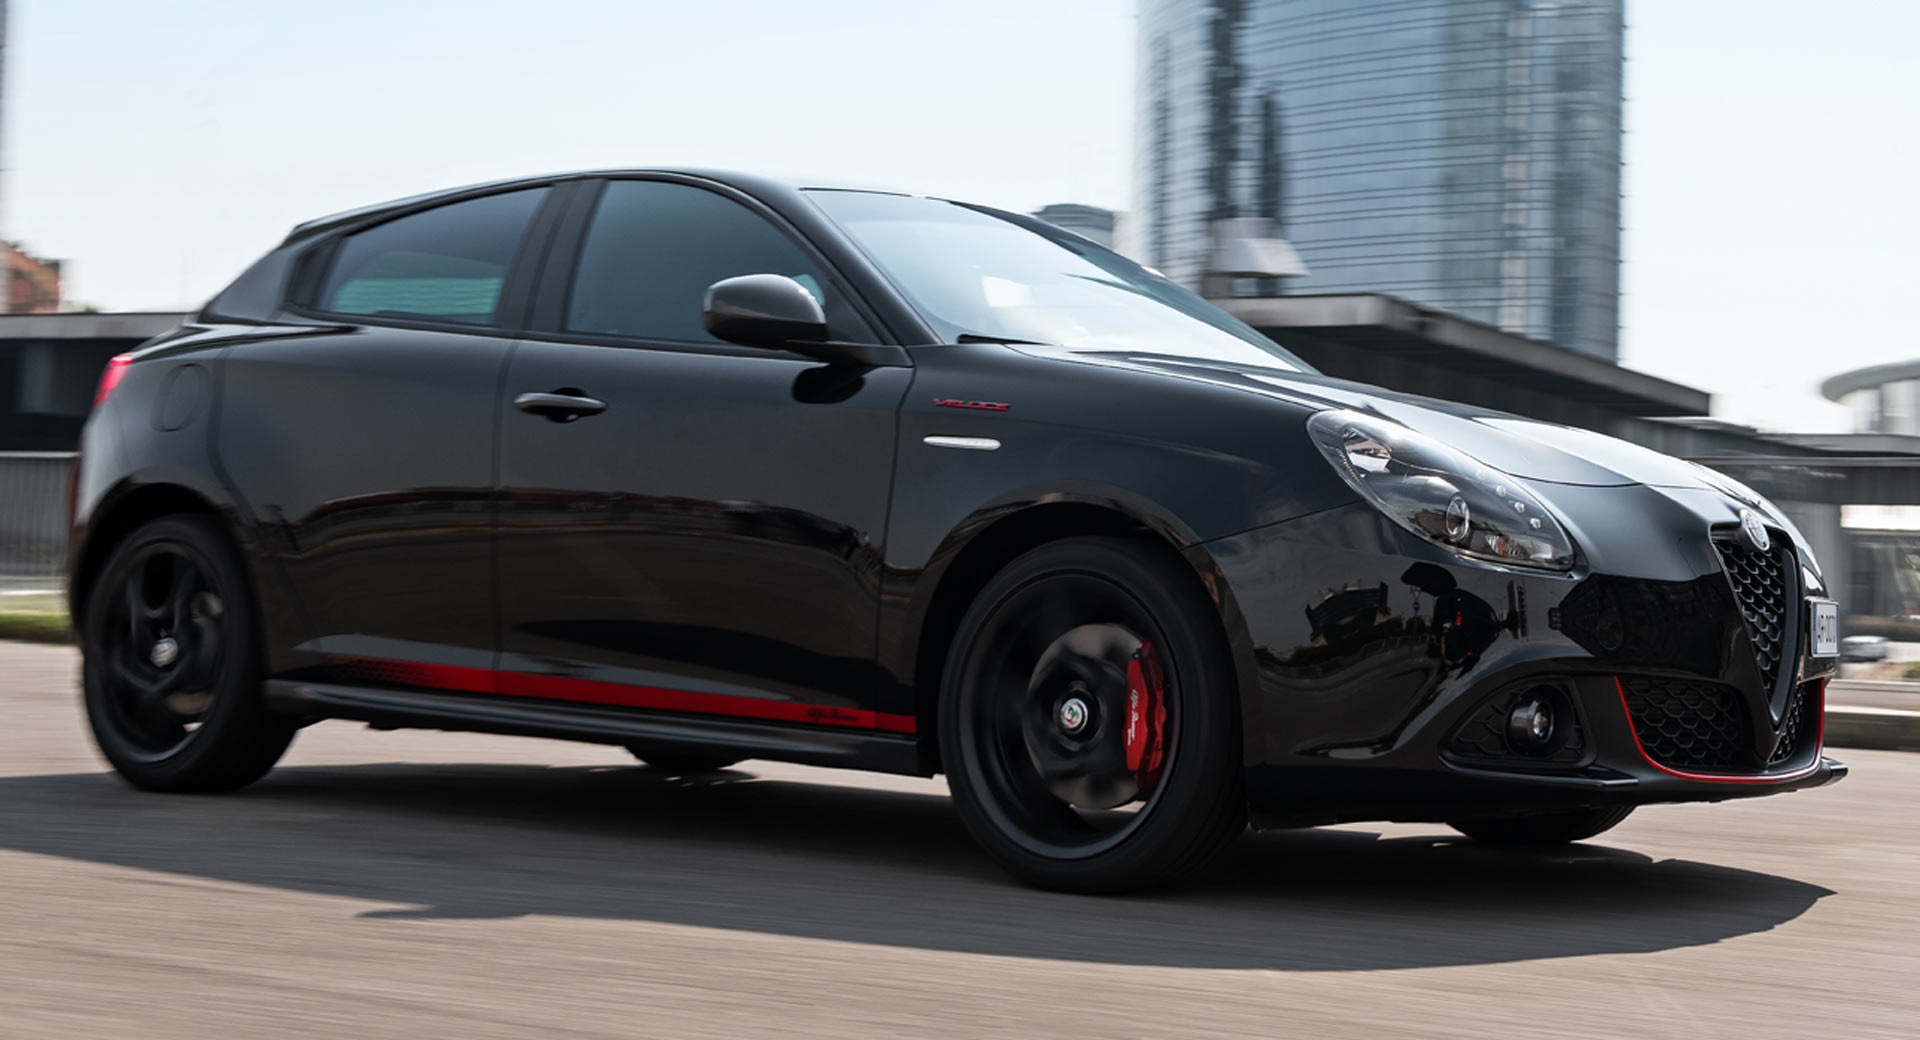 Alfa Romeo Giulietta Veloce S Features Sporty Trim Limited To 30 Units Carscoops